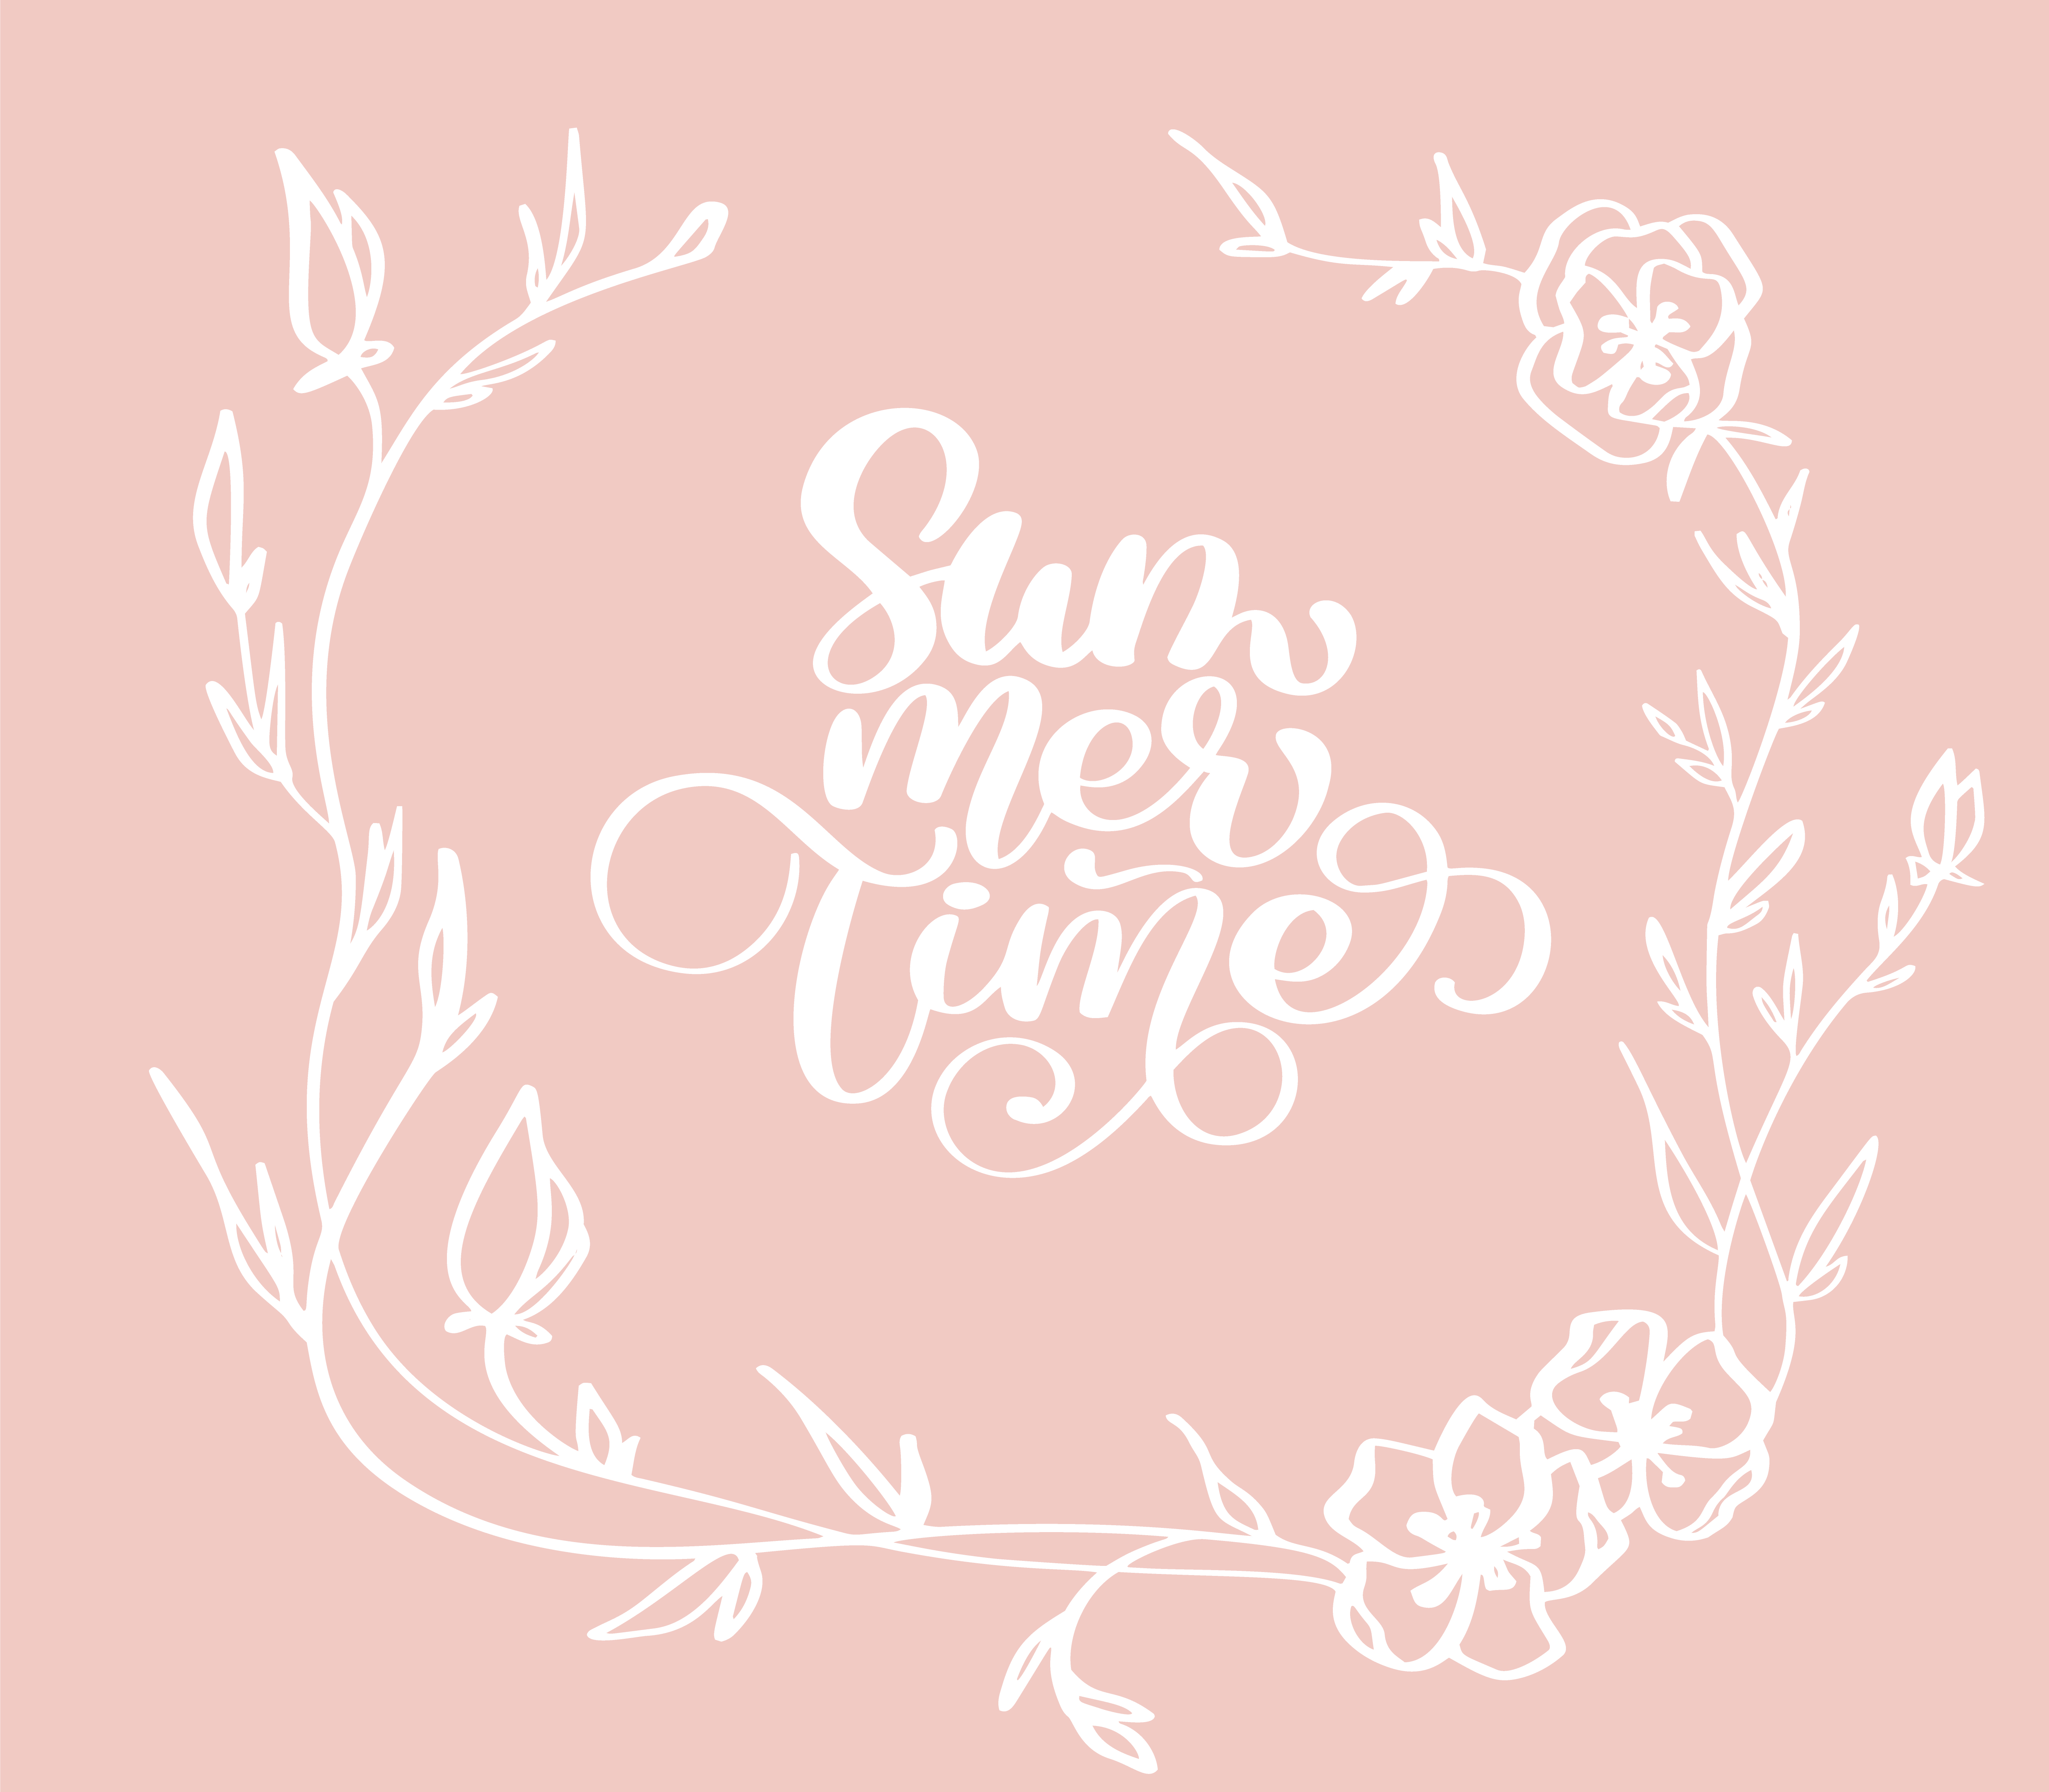 Hand Drawn Summer Time With Flowers Decorative Wreath Doodle Sketch Lettering Vector Logo Illusrtation Modern Calligraphy Lettering On White Illustration Stock Vector Download Free Vectors Clipart Graphics Vector Art